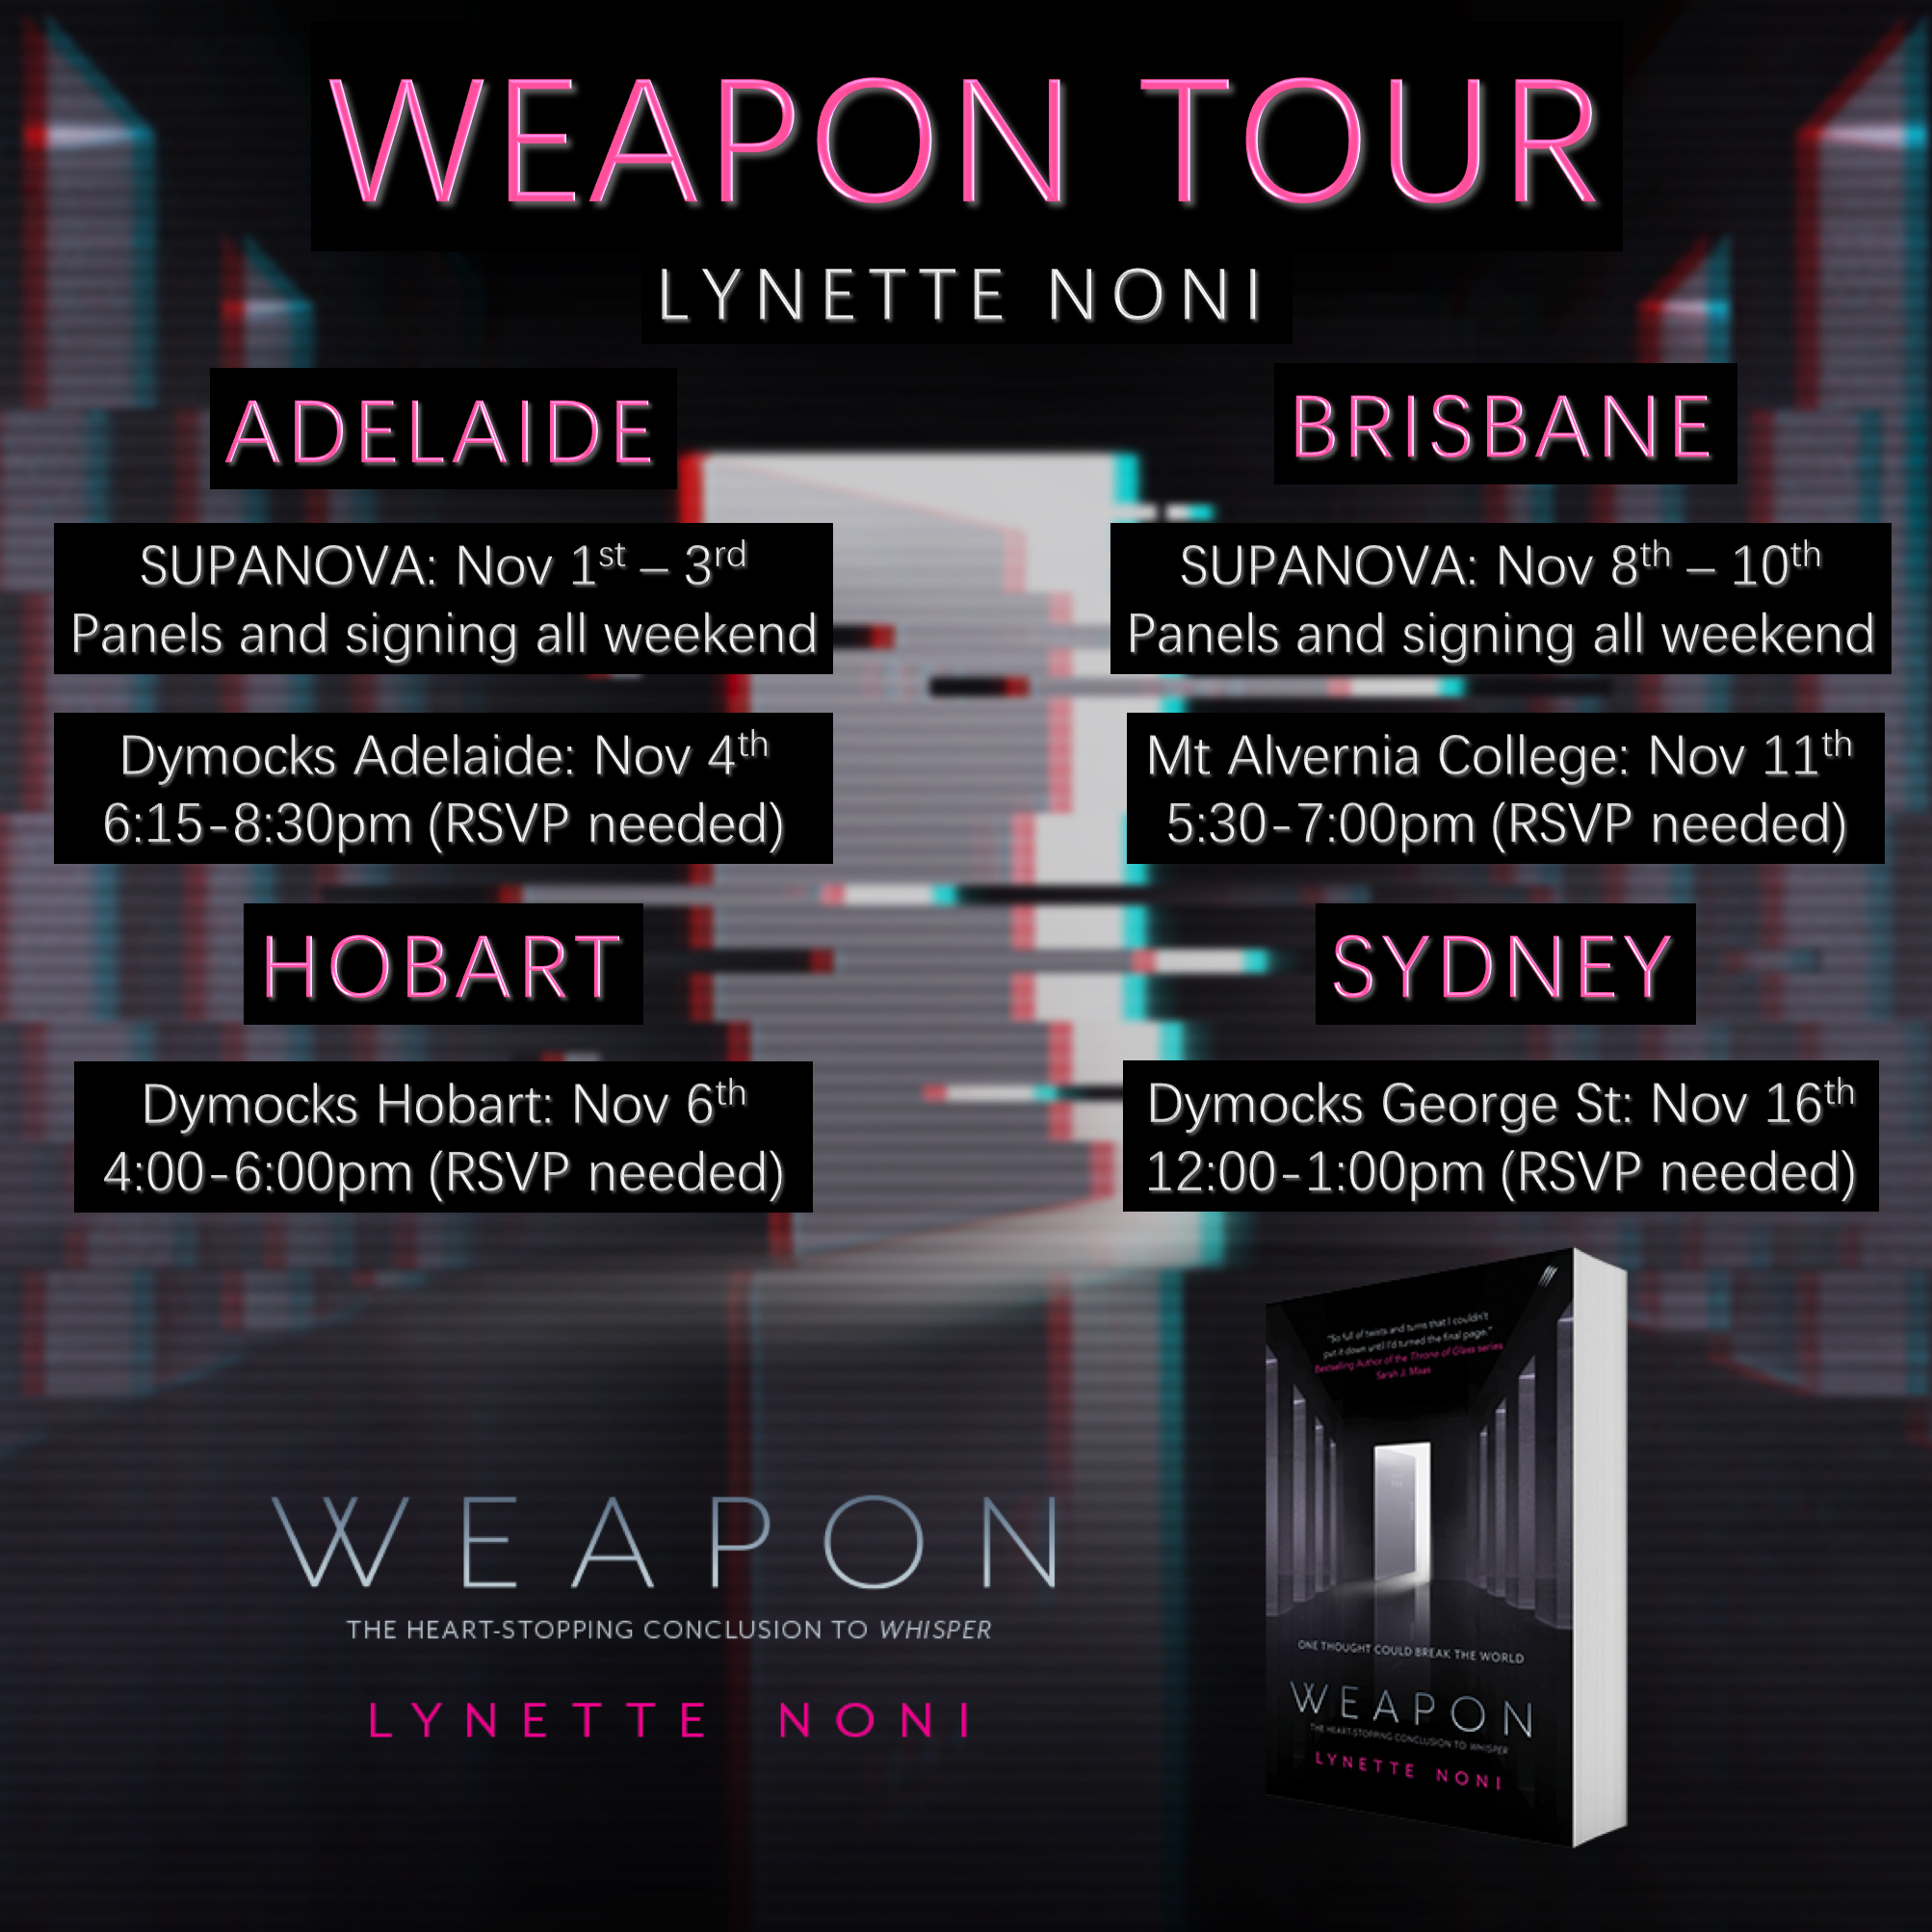 Weapon tour 2